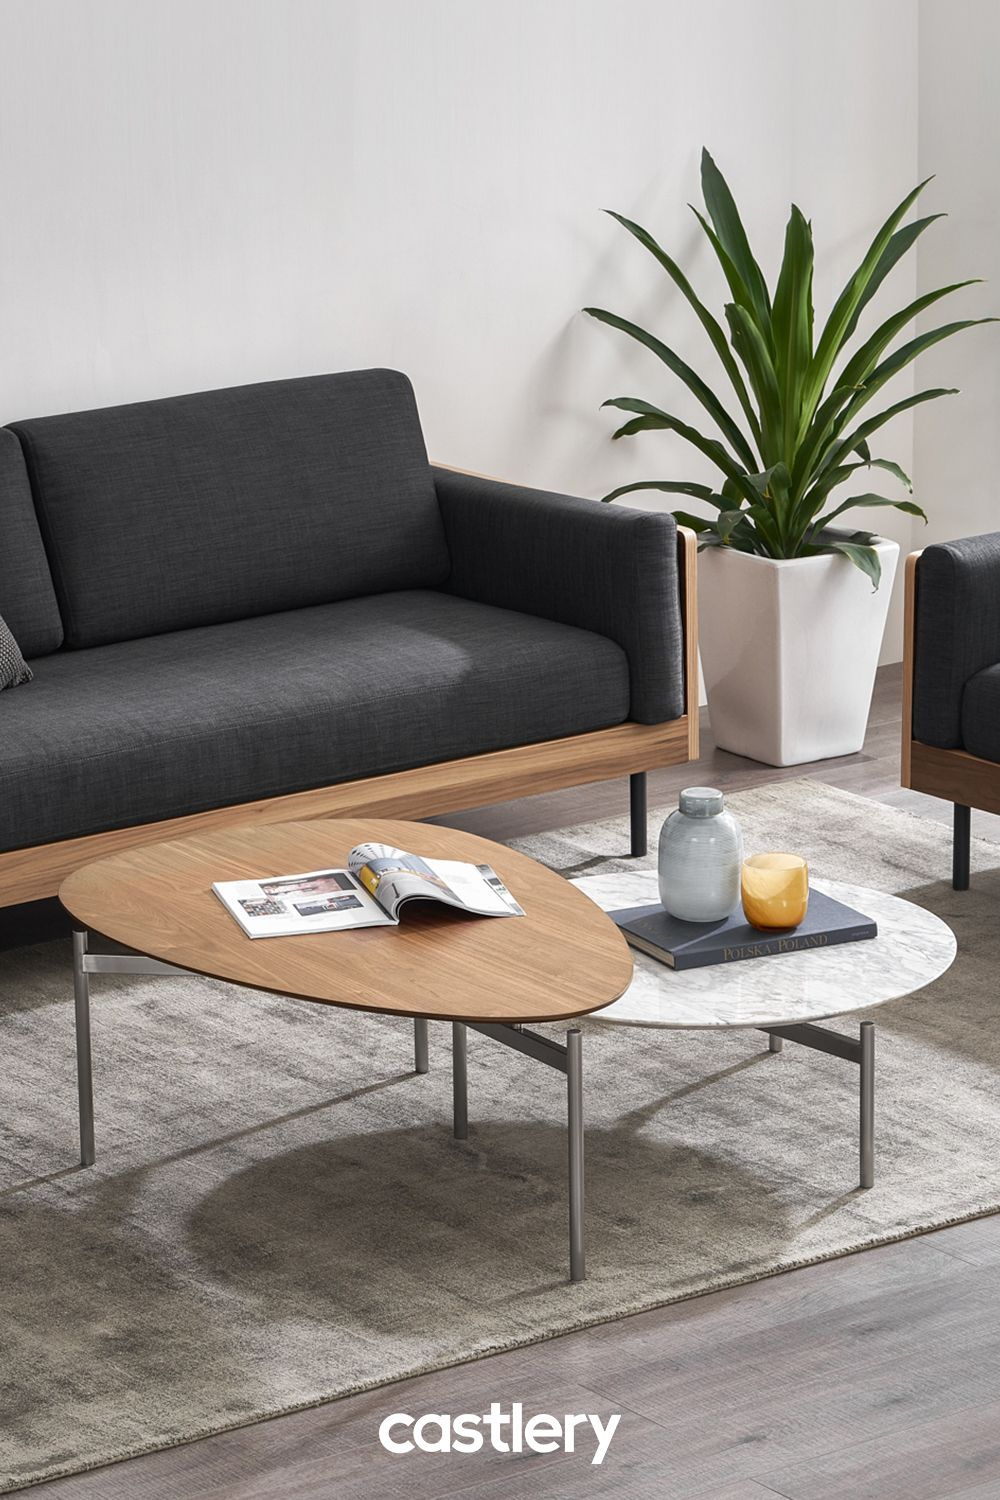 Alpha Omega Coffee Table Set In 2020 Buy Coffee Table Table